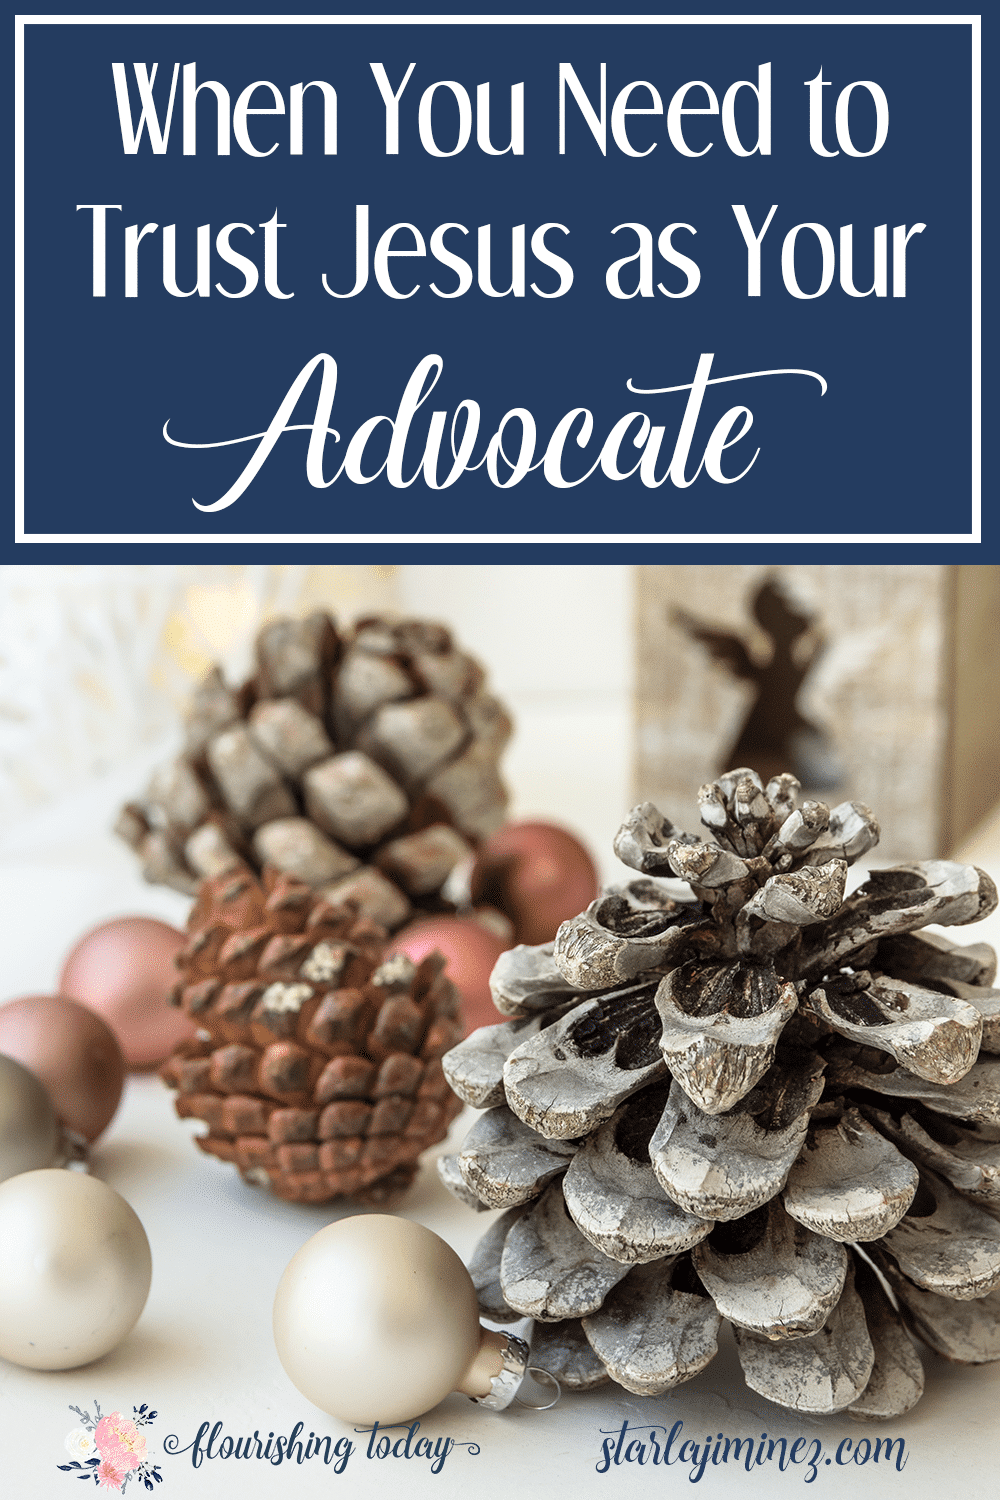 Do you know Jesus as your Advocate? When life gets messy and you feel alone, He is there to work on your behalf. Join us as we study Jesus your Advocate.